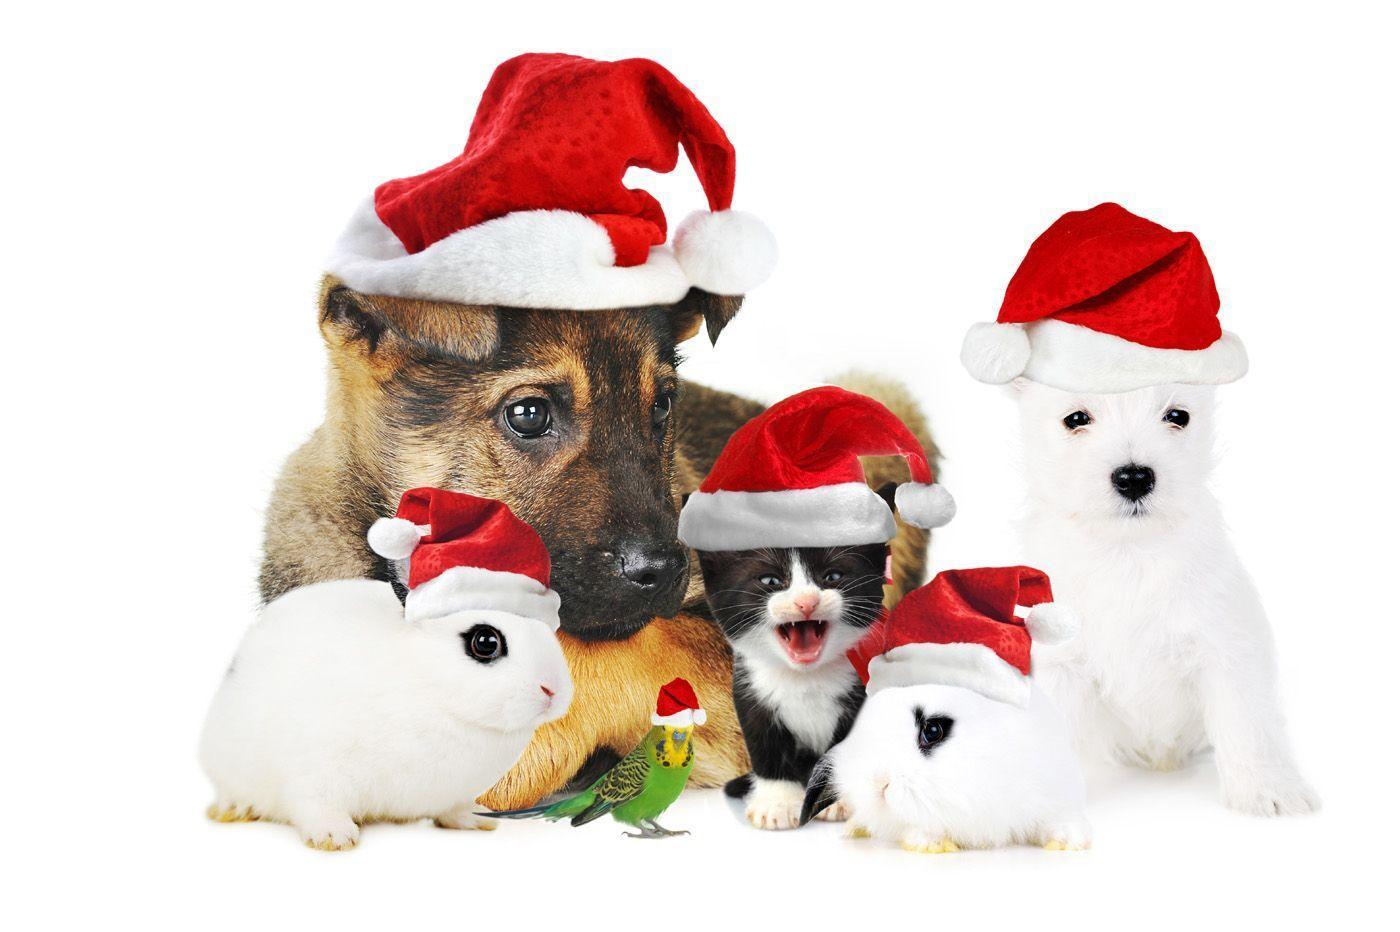 Christmas dog wallpapers wallpaper cave for Wildlife christmas cards 2016